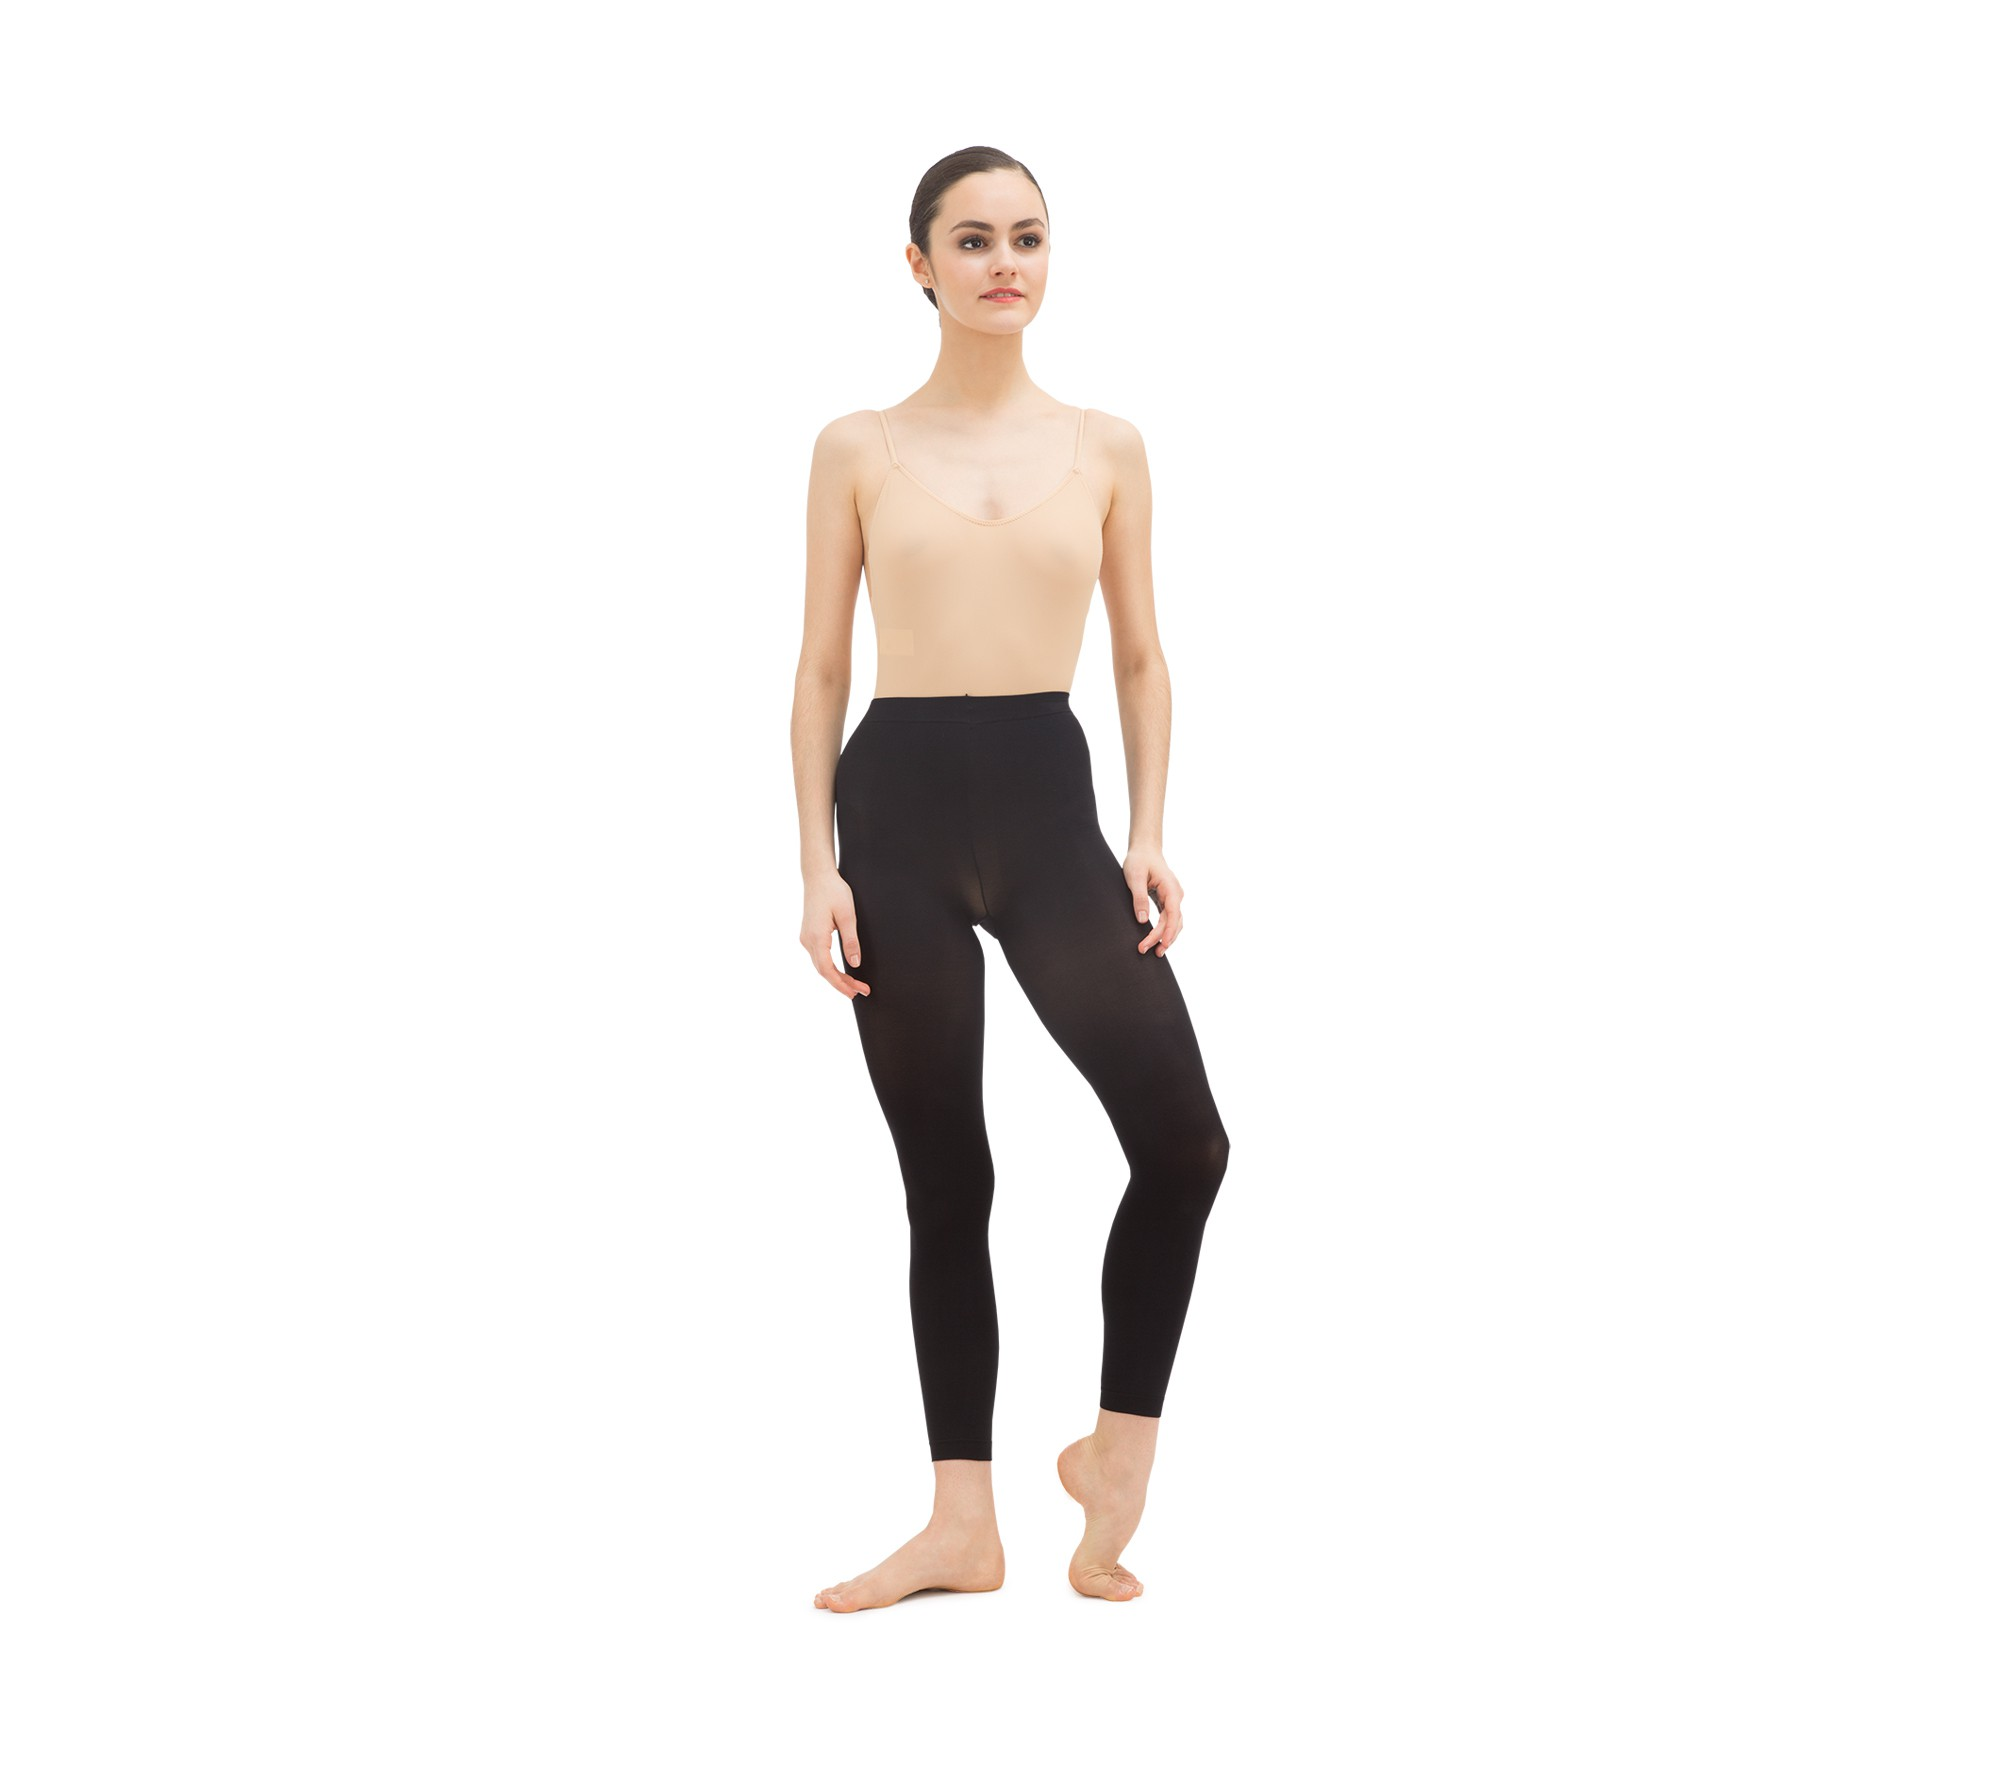 Footless dance tights